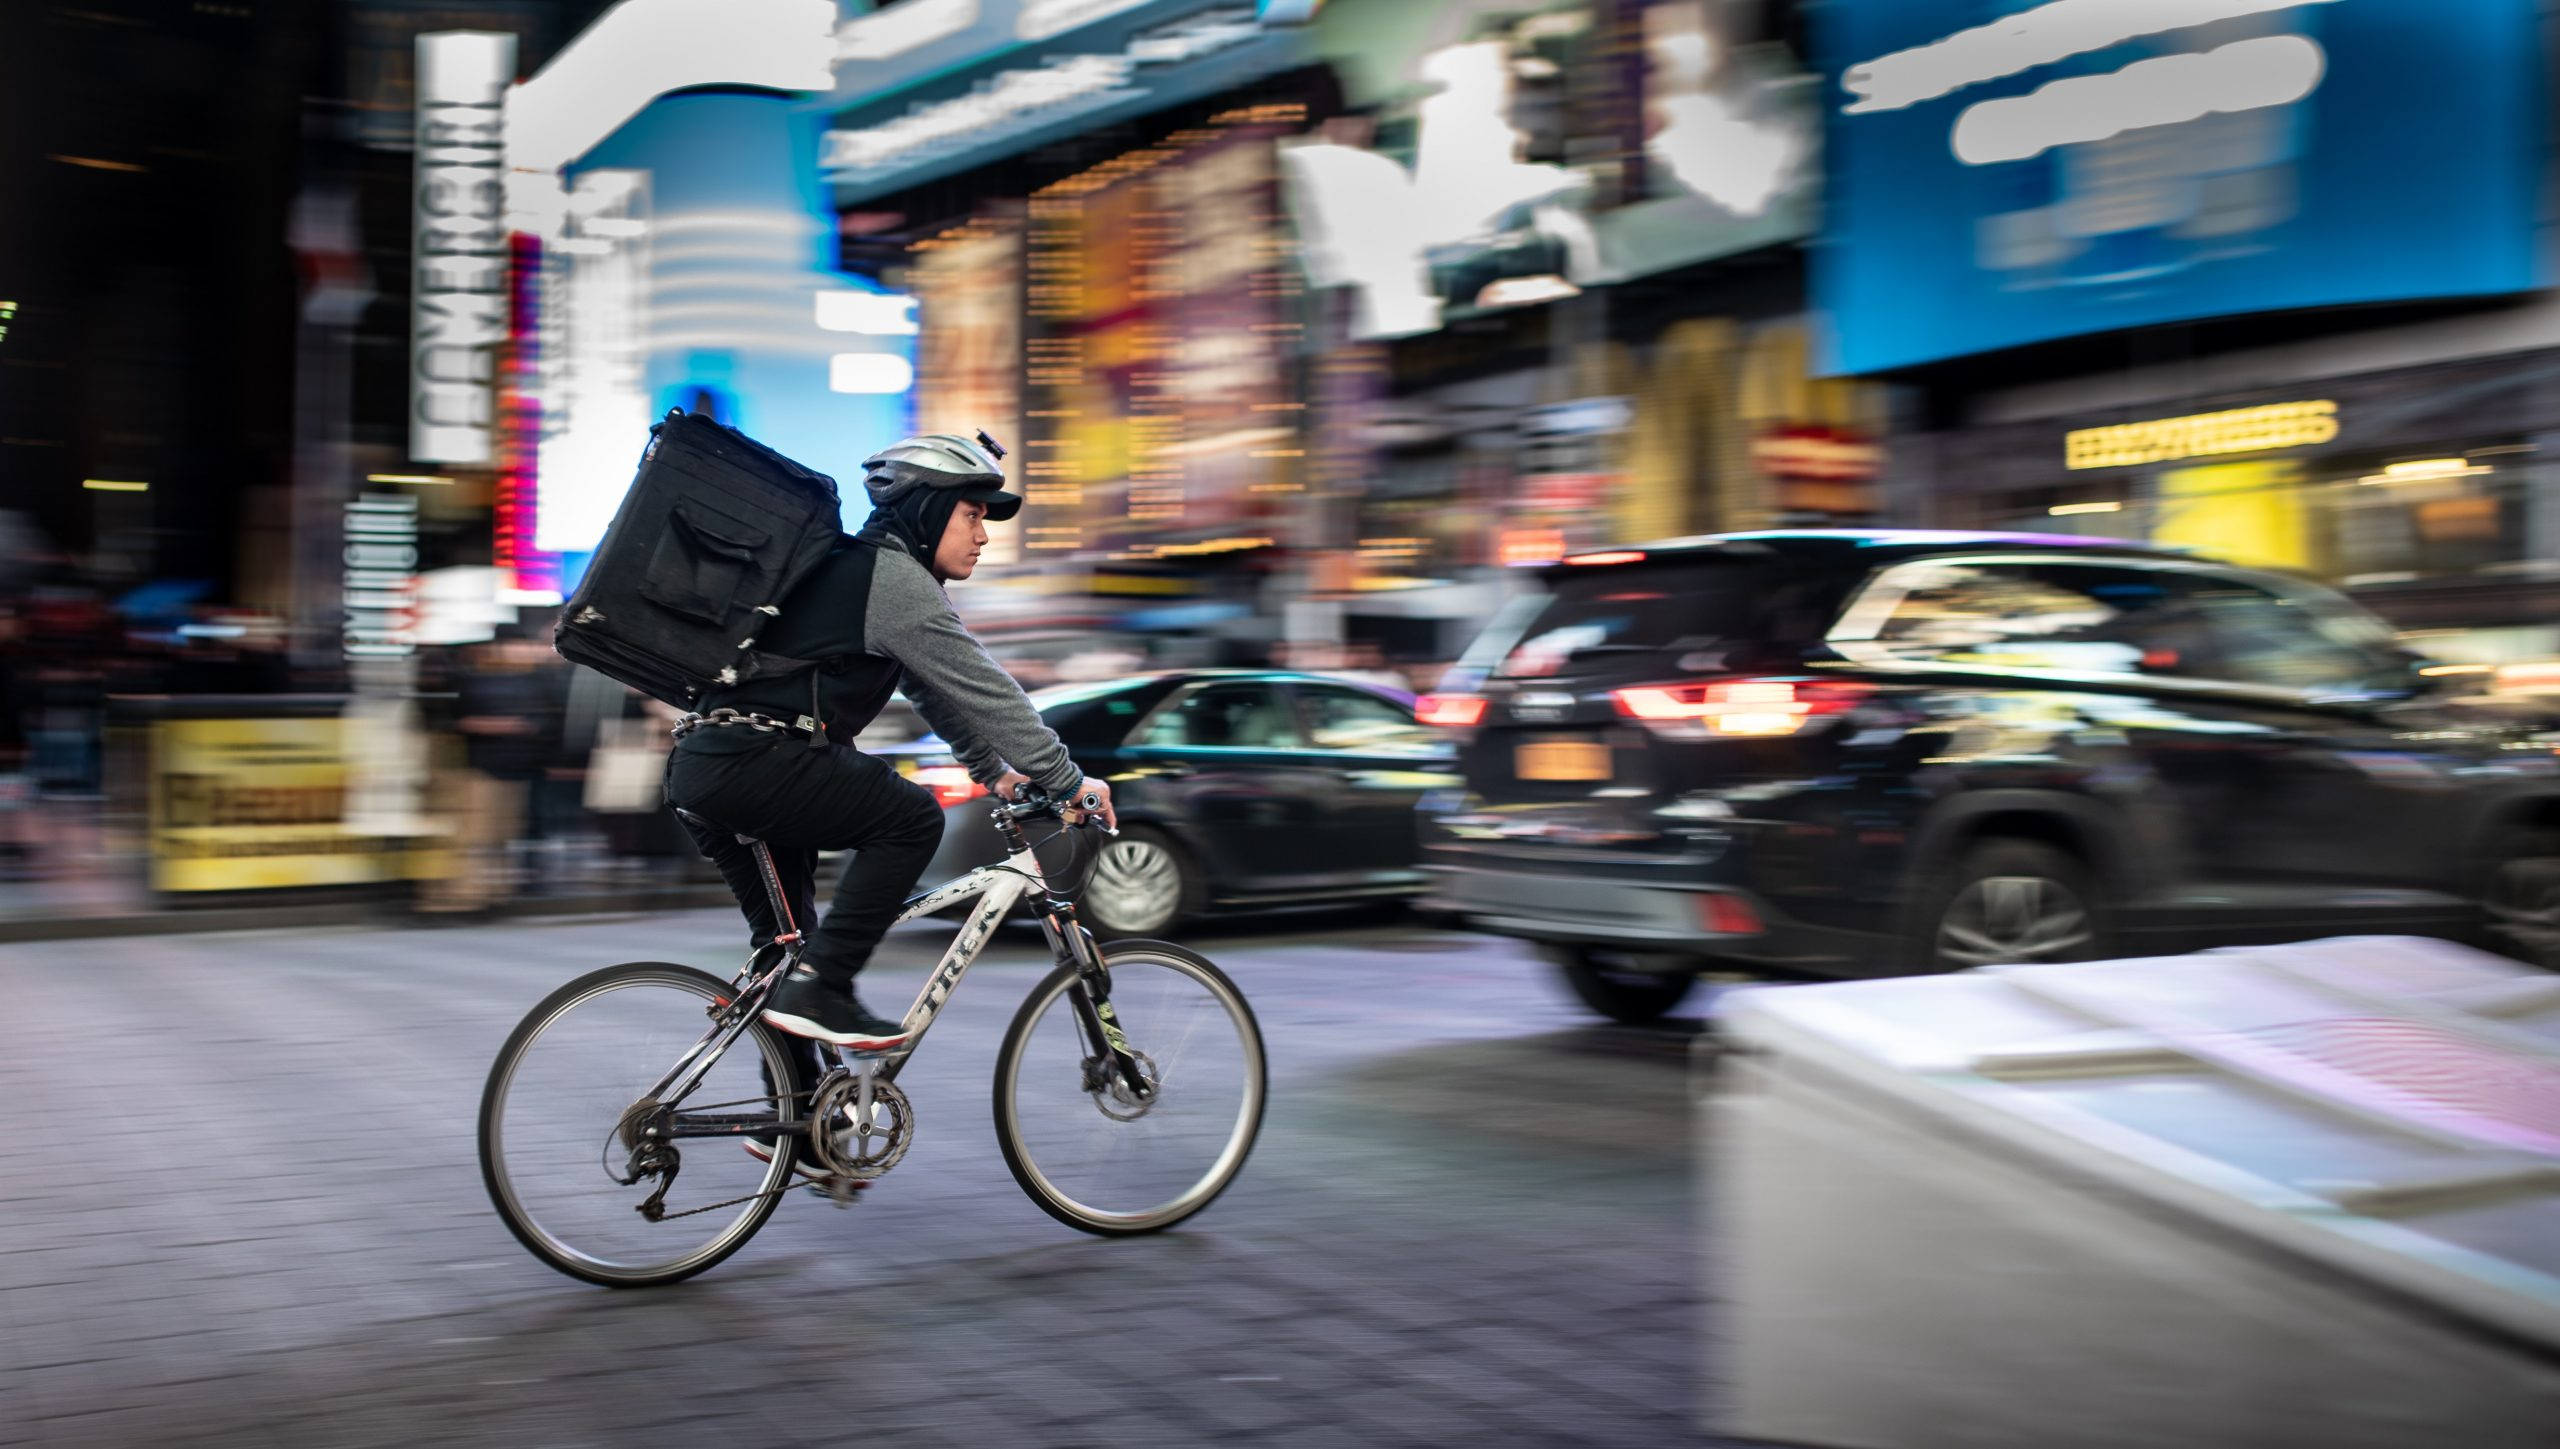 A cyclist delivering food cycles away from the camera